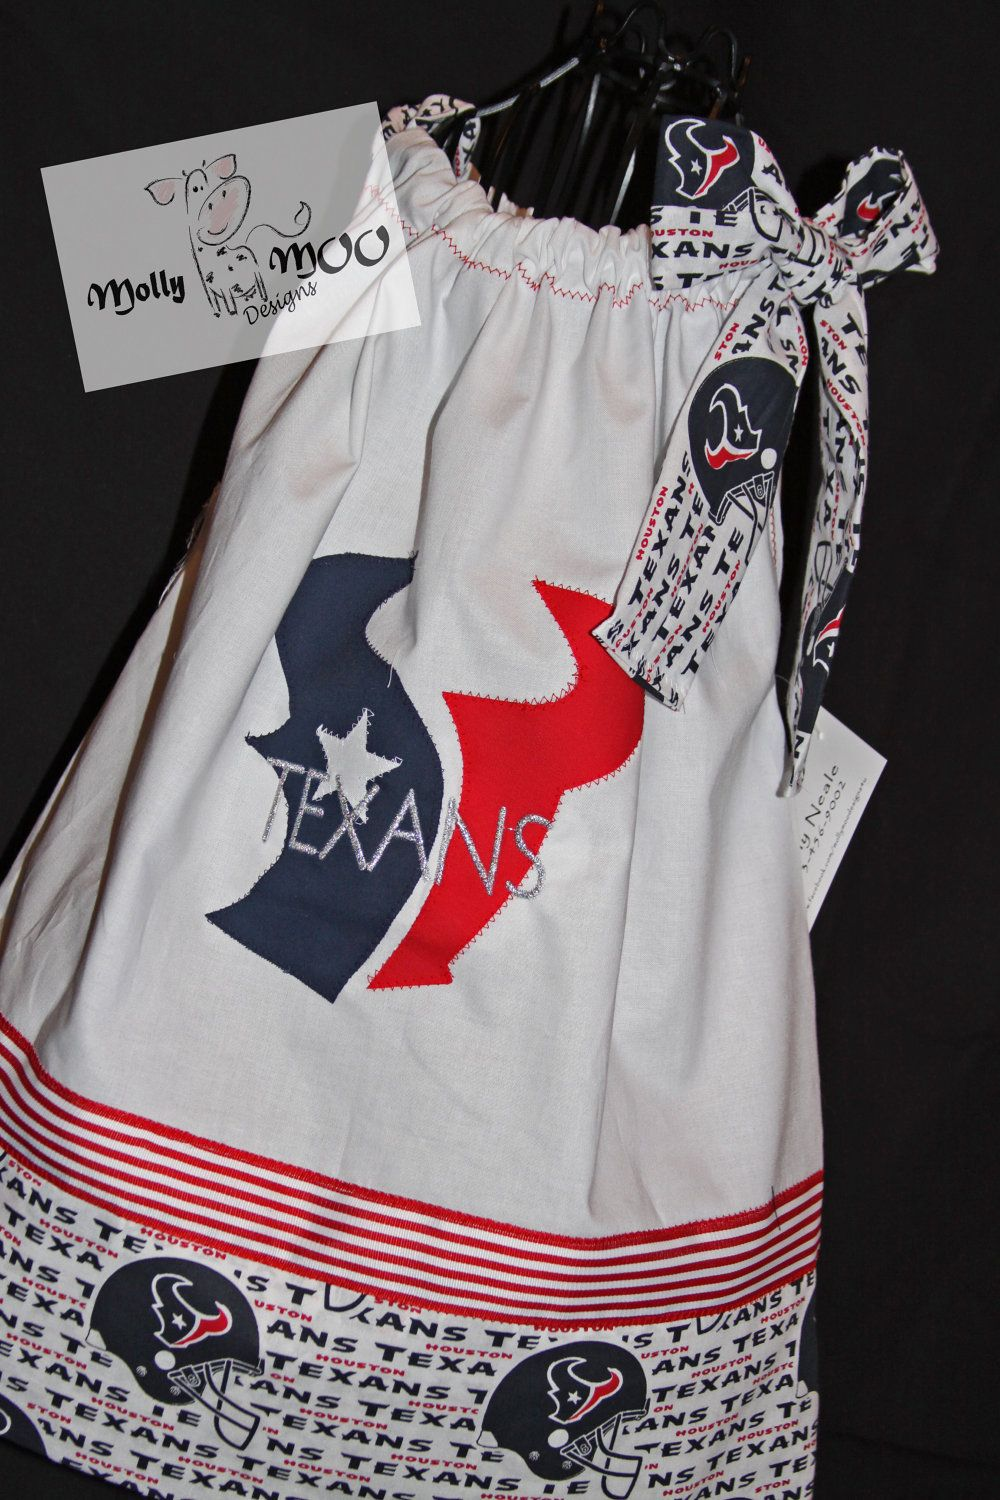 e25889c8 Houston Texans Dress. For my future daughter(if I have one ...